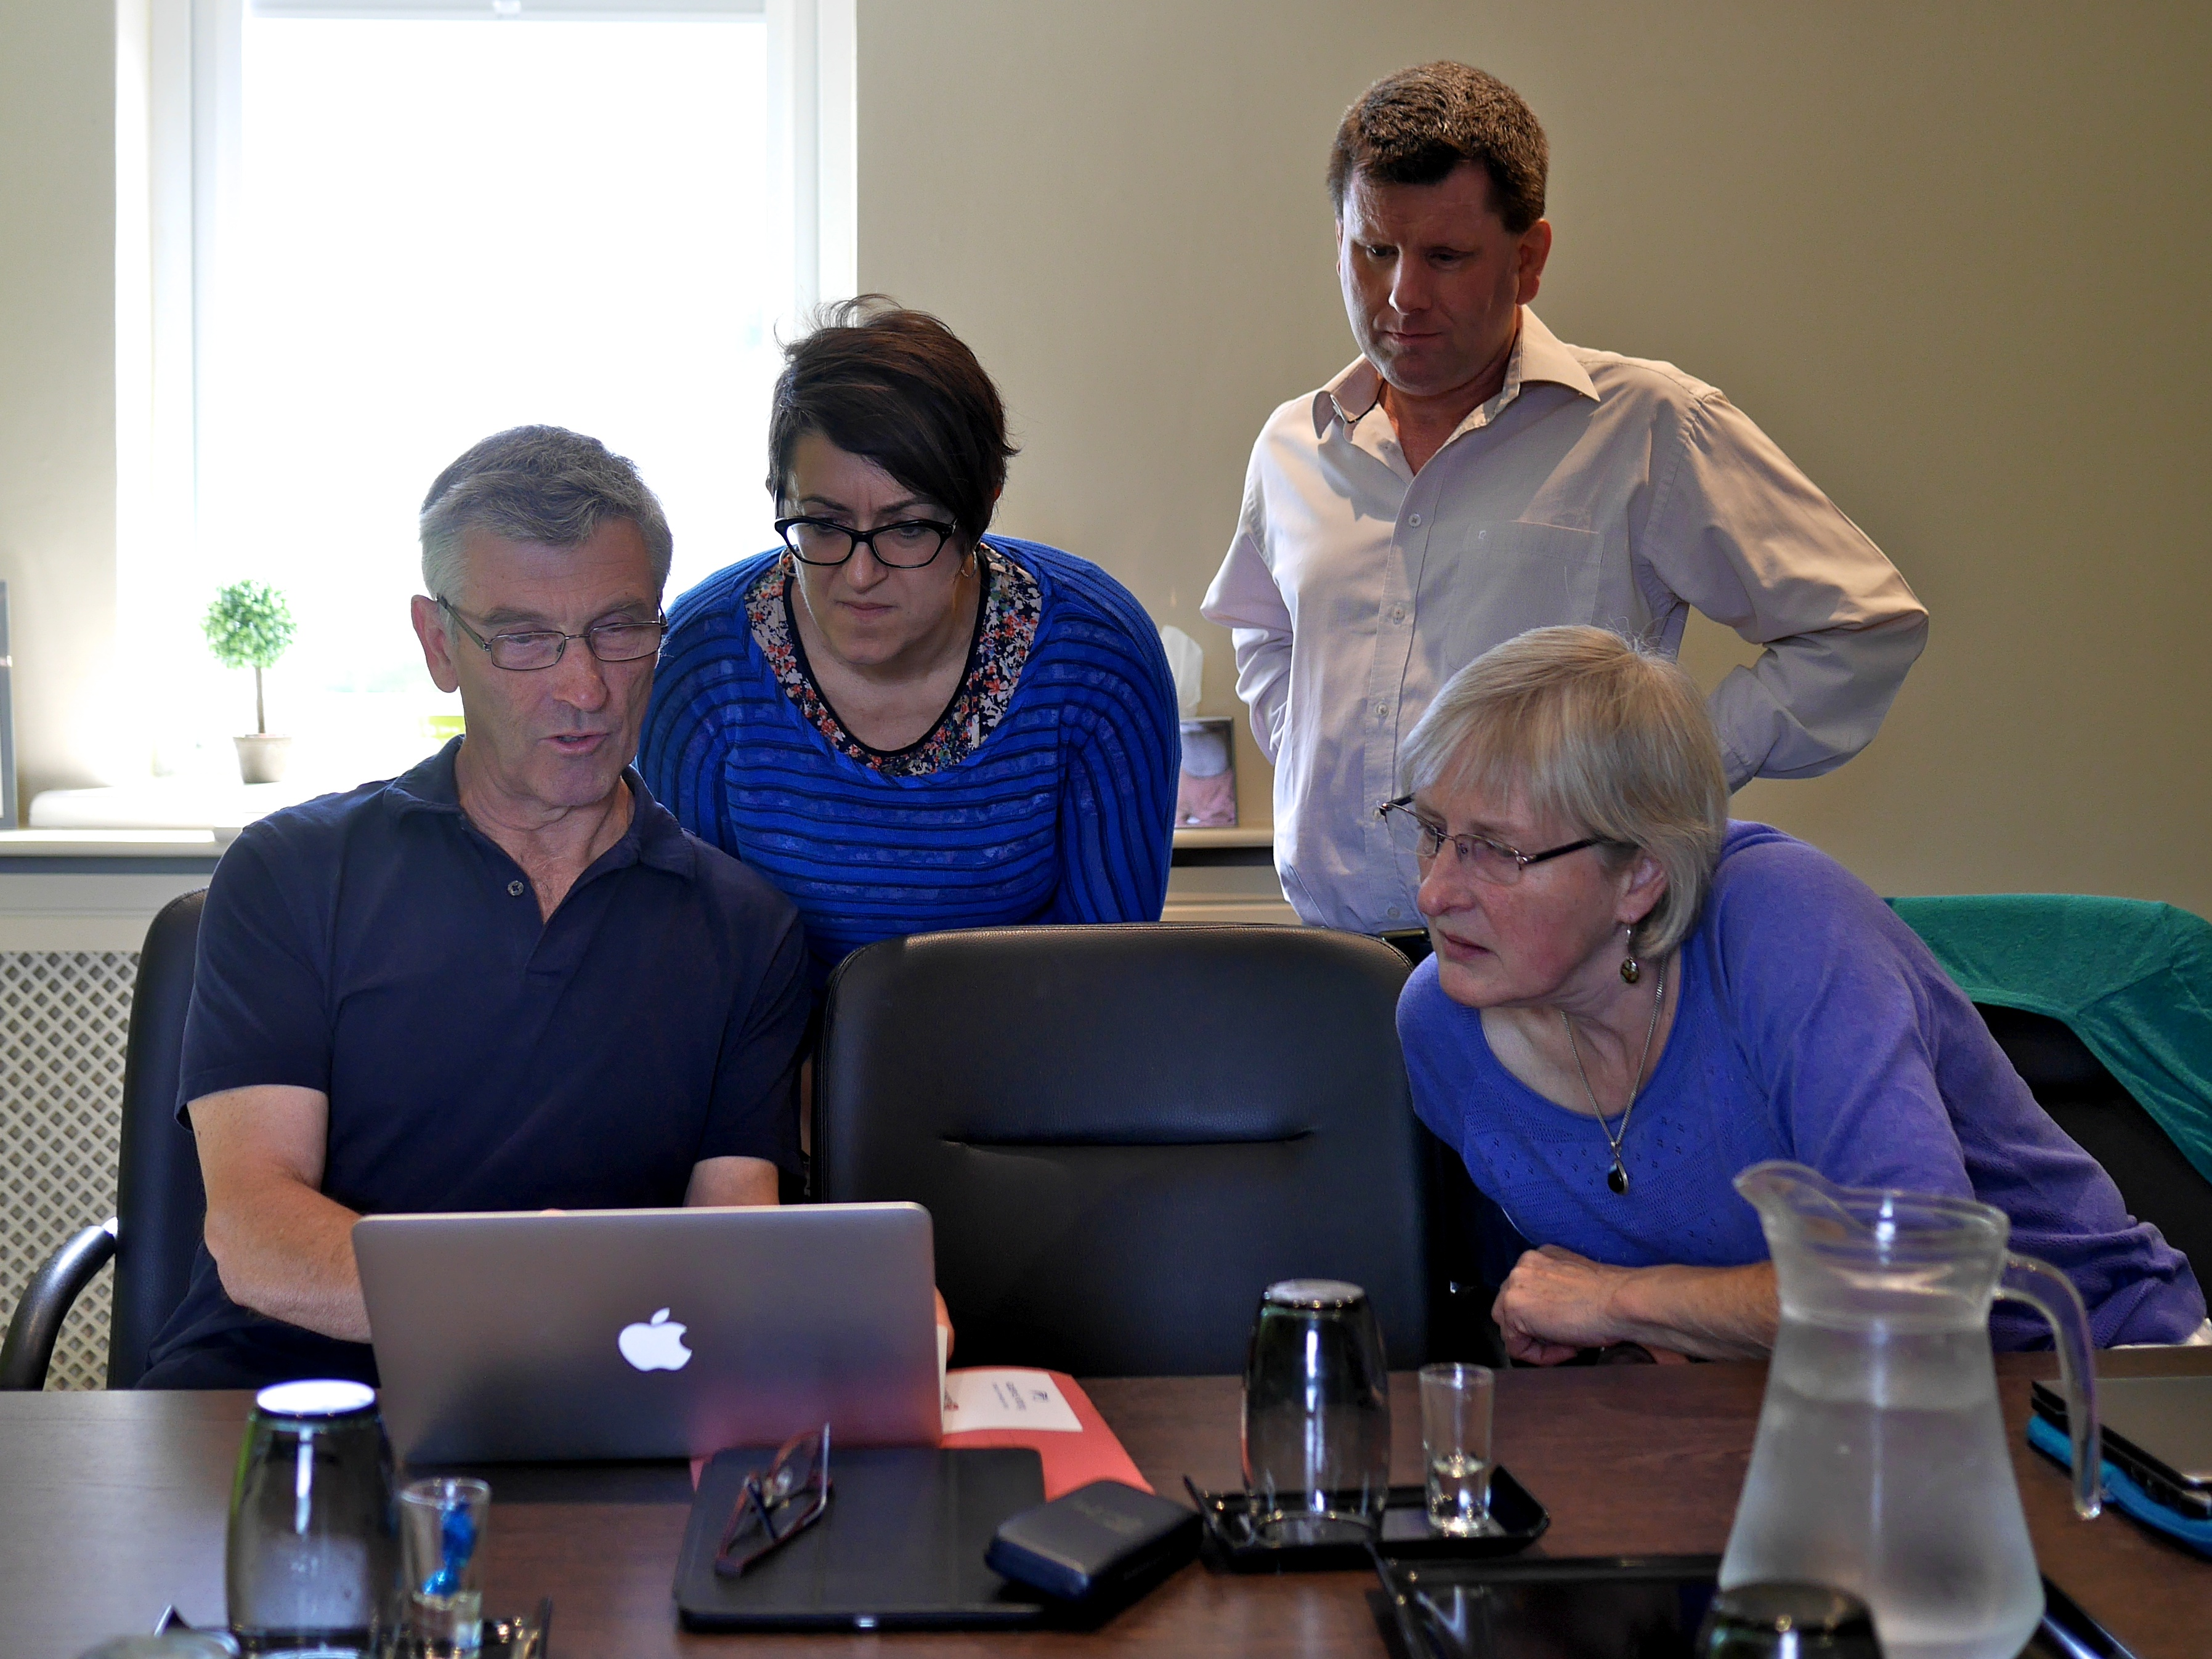 academic writing retreat the dynamics of knowledge creation a mathematician shows academics from history marketing and educational research how to use latex photo by greg myers